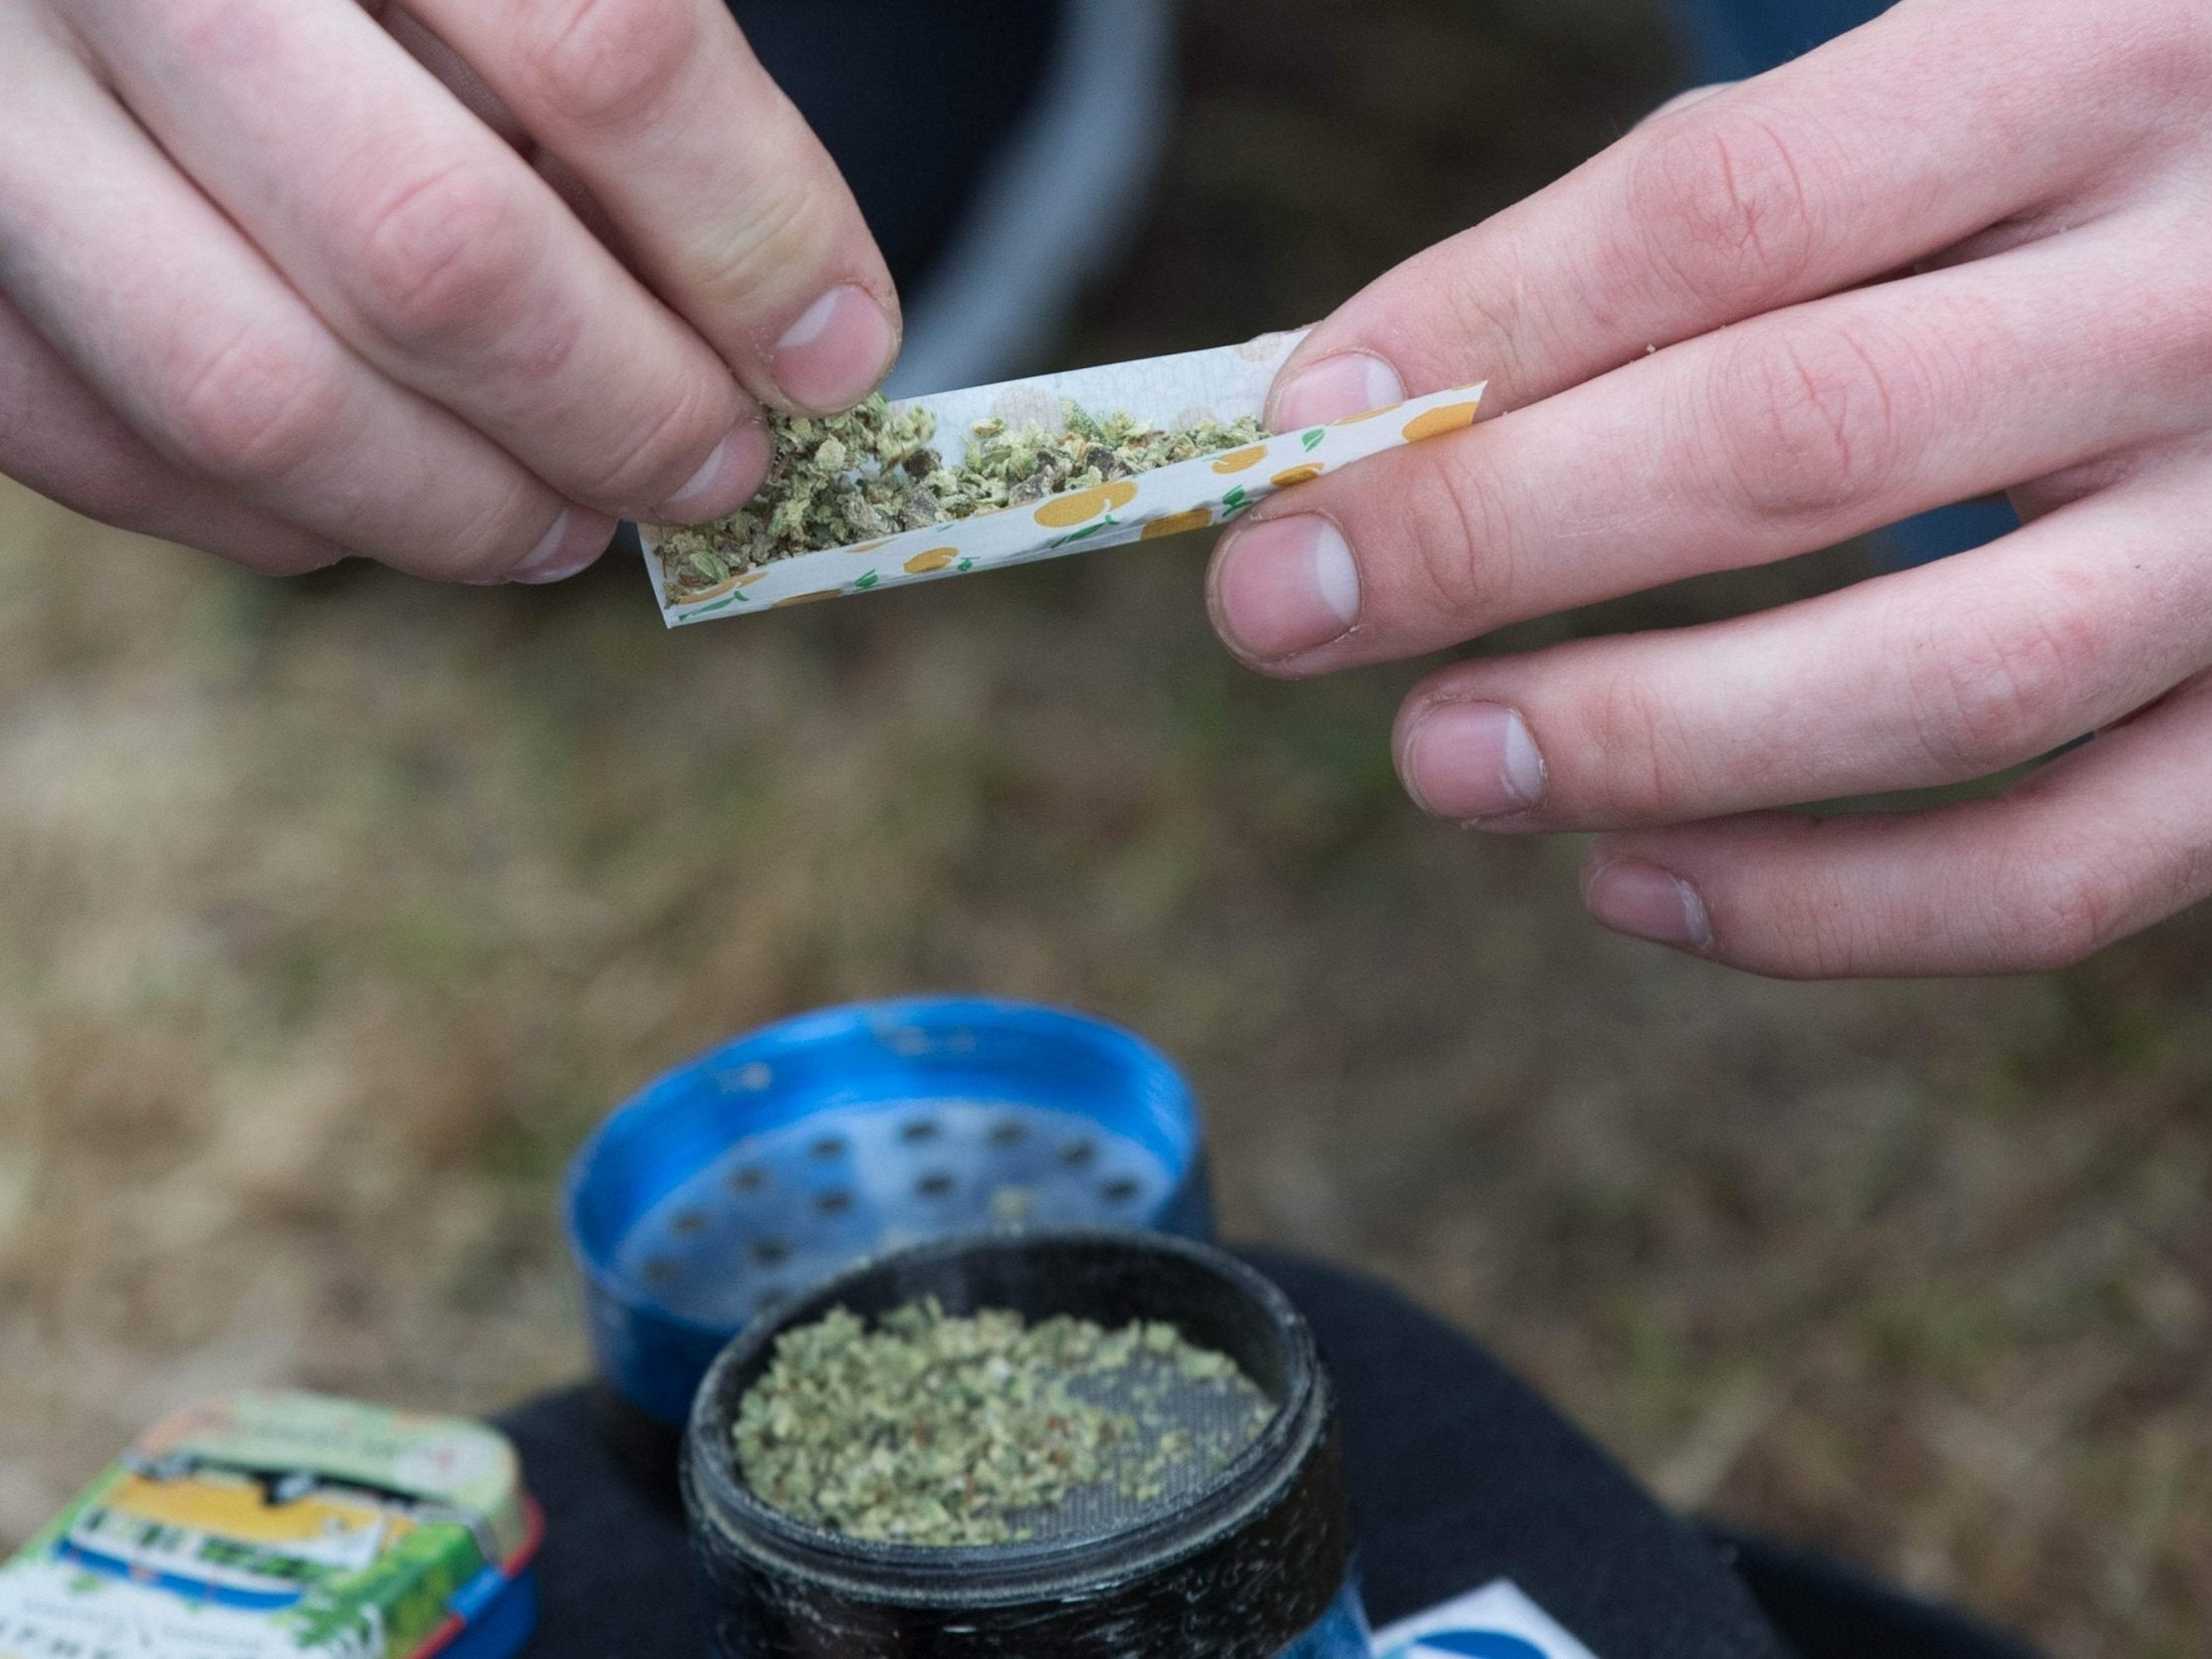 Colorado has made more than $1bn from legal marijuana industry